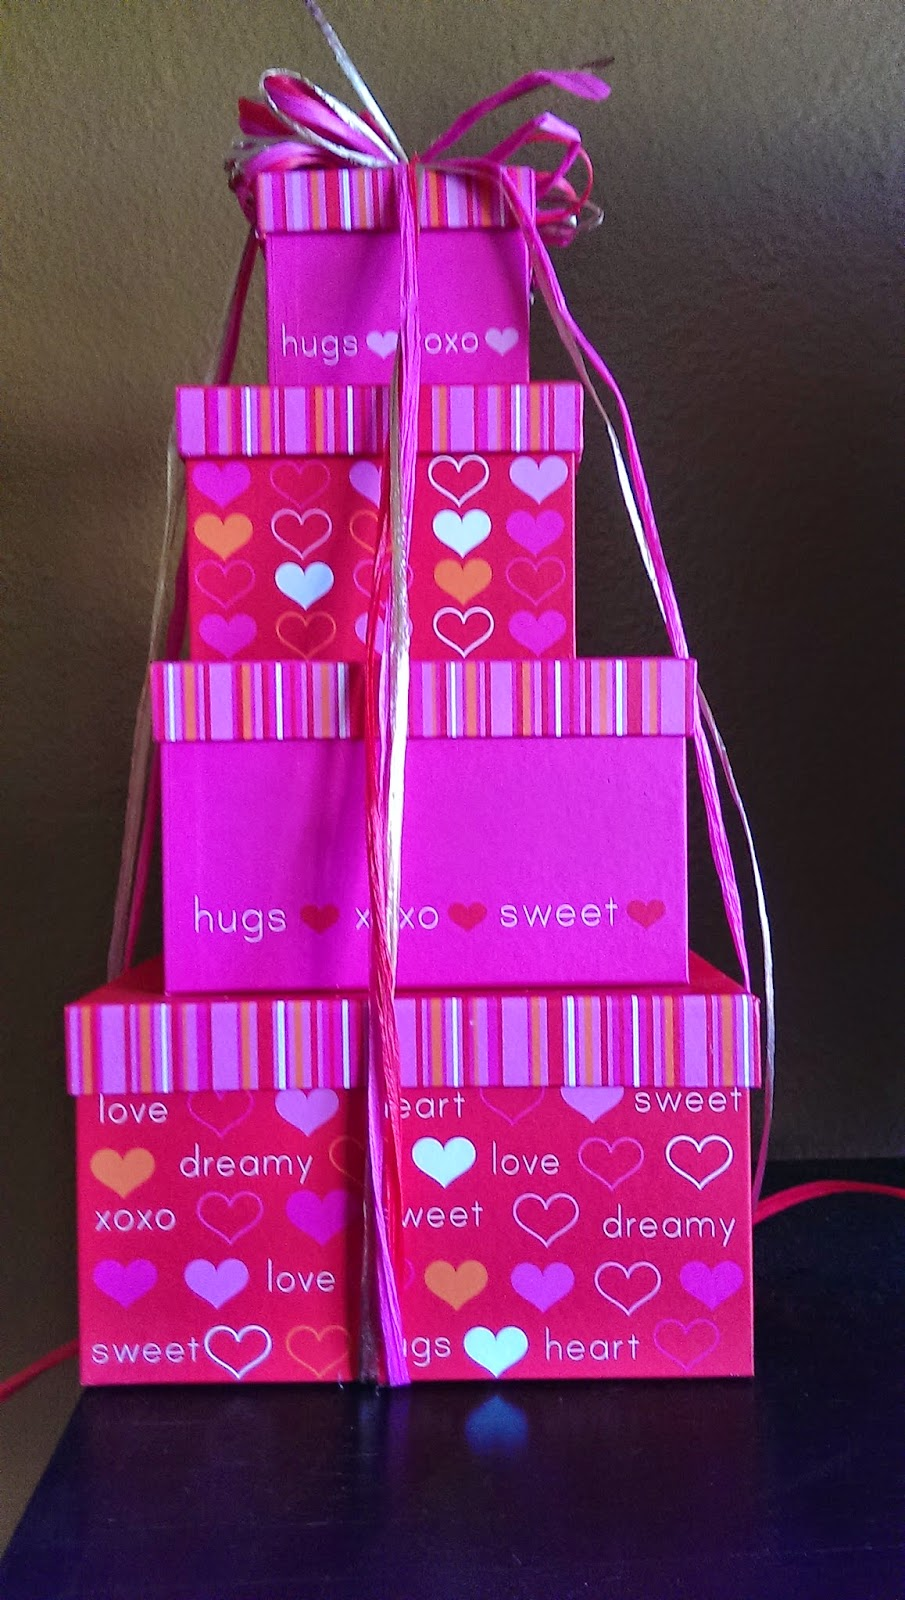 The%2Bheart%2Bgift%2Btower Creative Valentine's Day Food Gifts For Men and Women - Gift Baskets